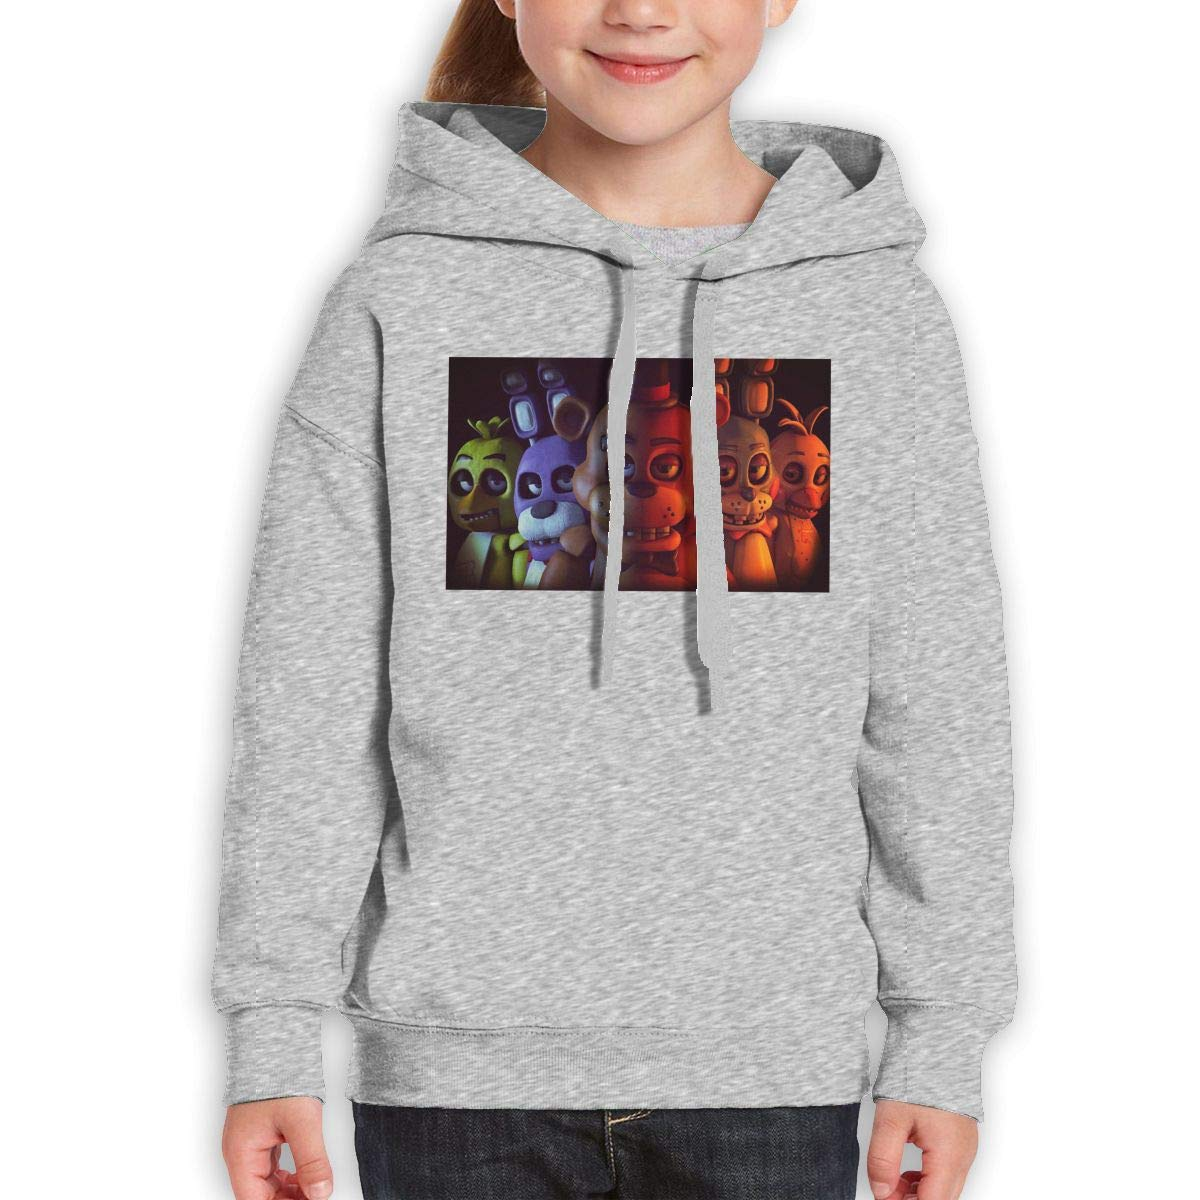 MountGet FNAF FIVE NIGHTS AT FREDDY'S Youth Limited Edition Casual Style Travel Hoodies Black